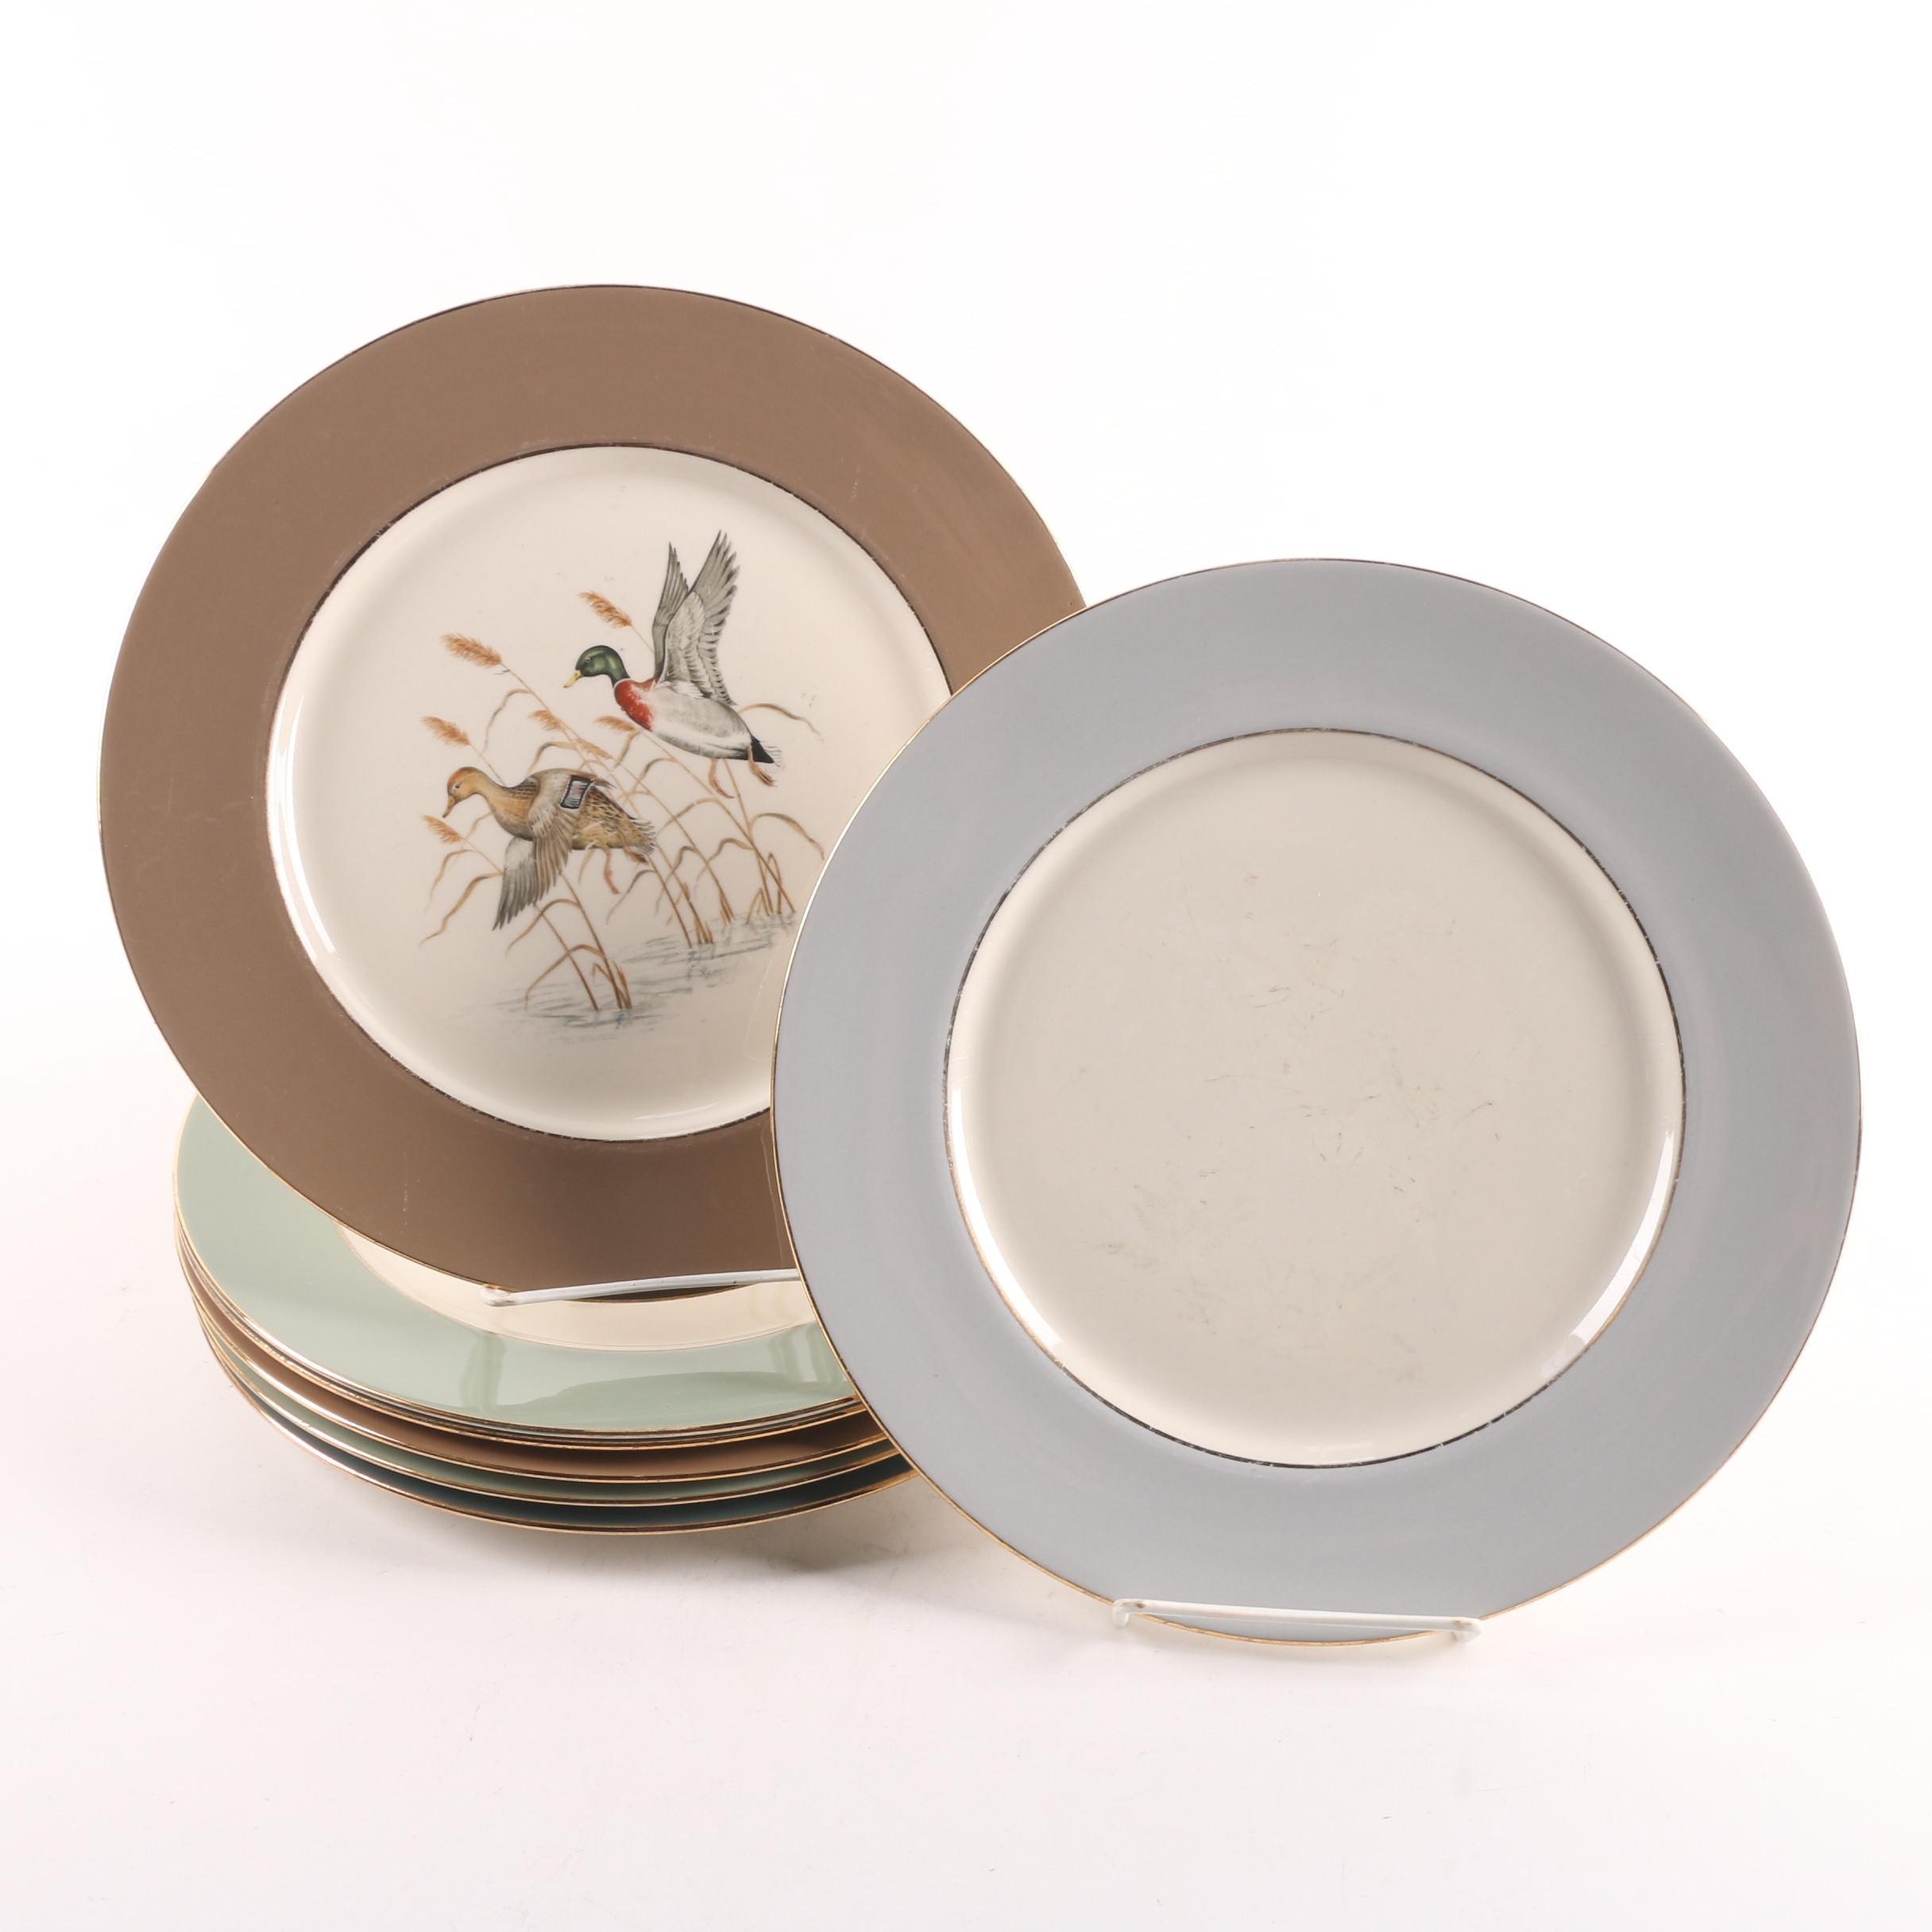 Vintage Eliot Game Bird Themed Porcelain Plates